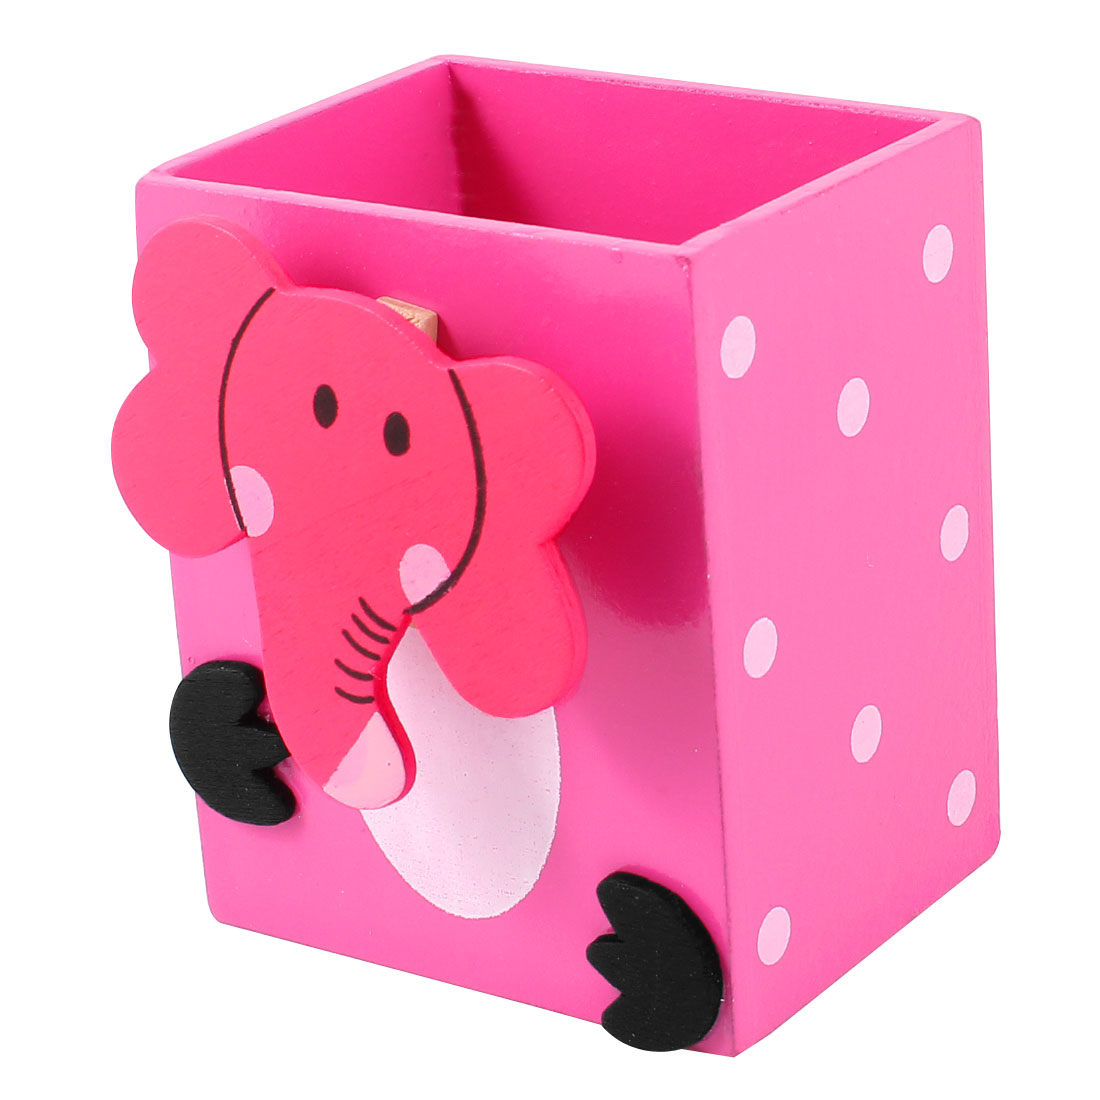 Cartoon Elephant Decor White Dots Print Wooden Pen Holder Pencil Container Fuchsia